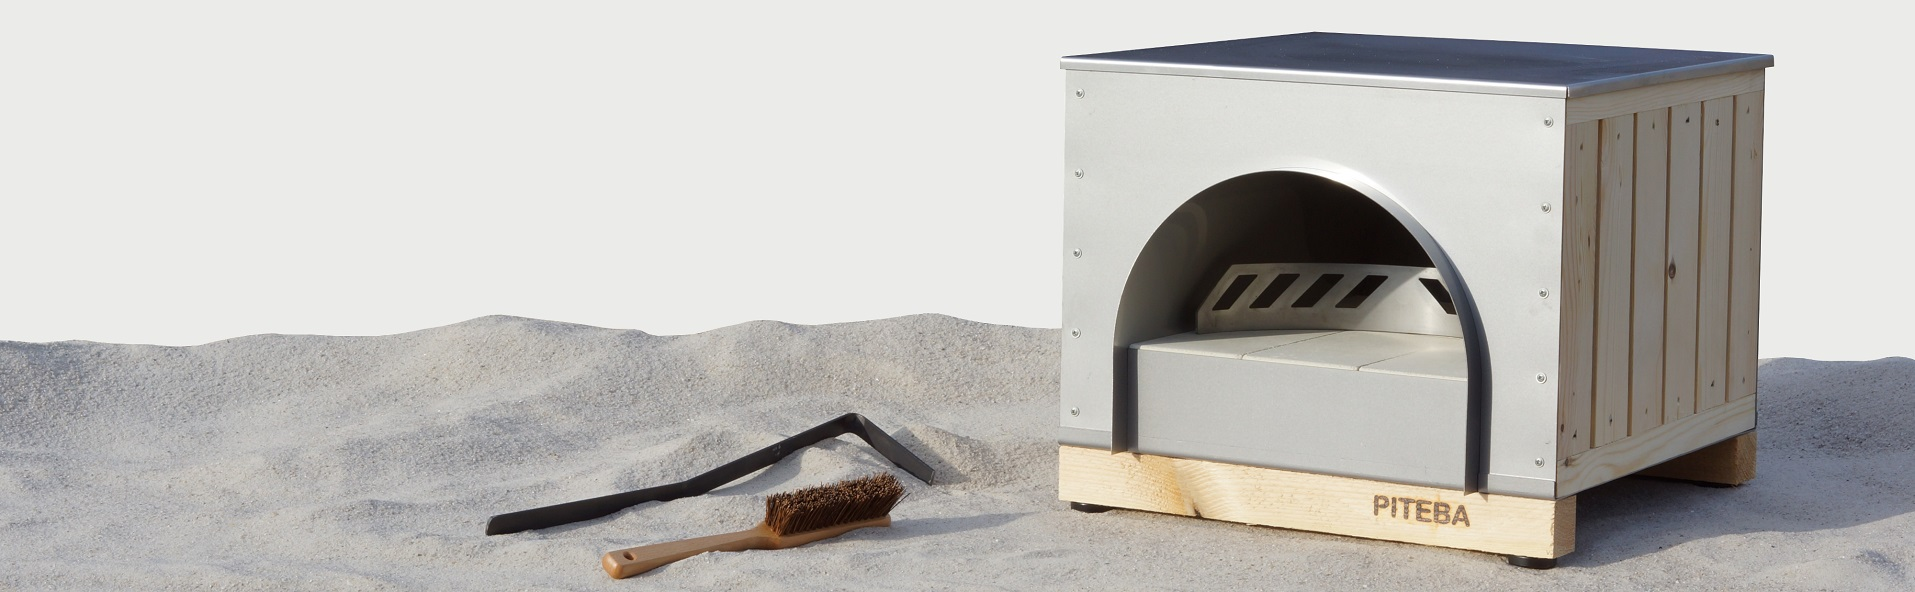 PITEBA Outdoor wood-fired pizza oven